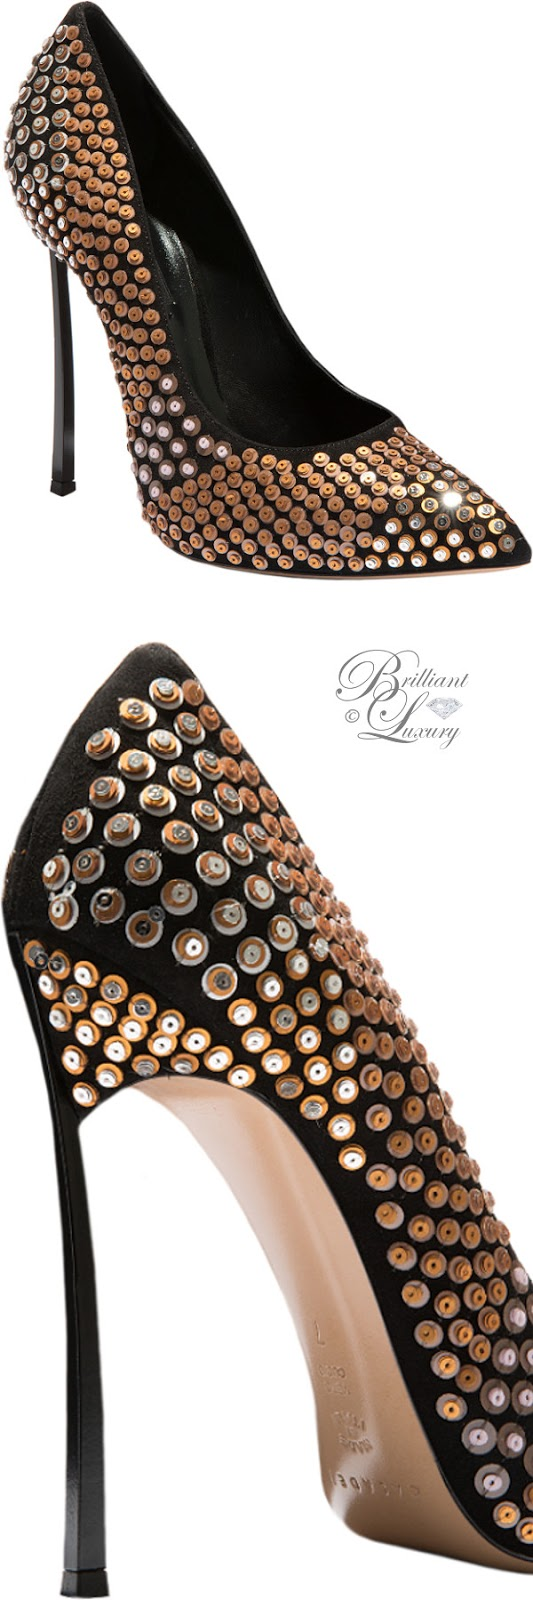 Brilliant Luxury ♦ Fall in ~ Casadei Blade high heels with metal studds